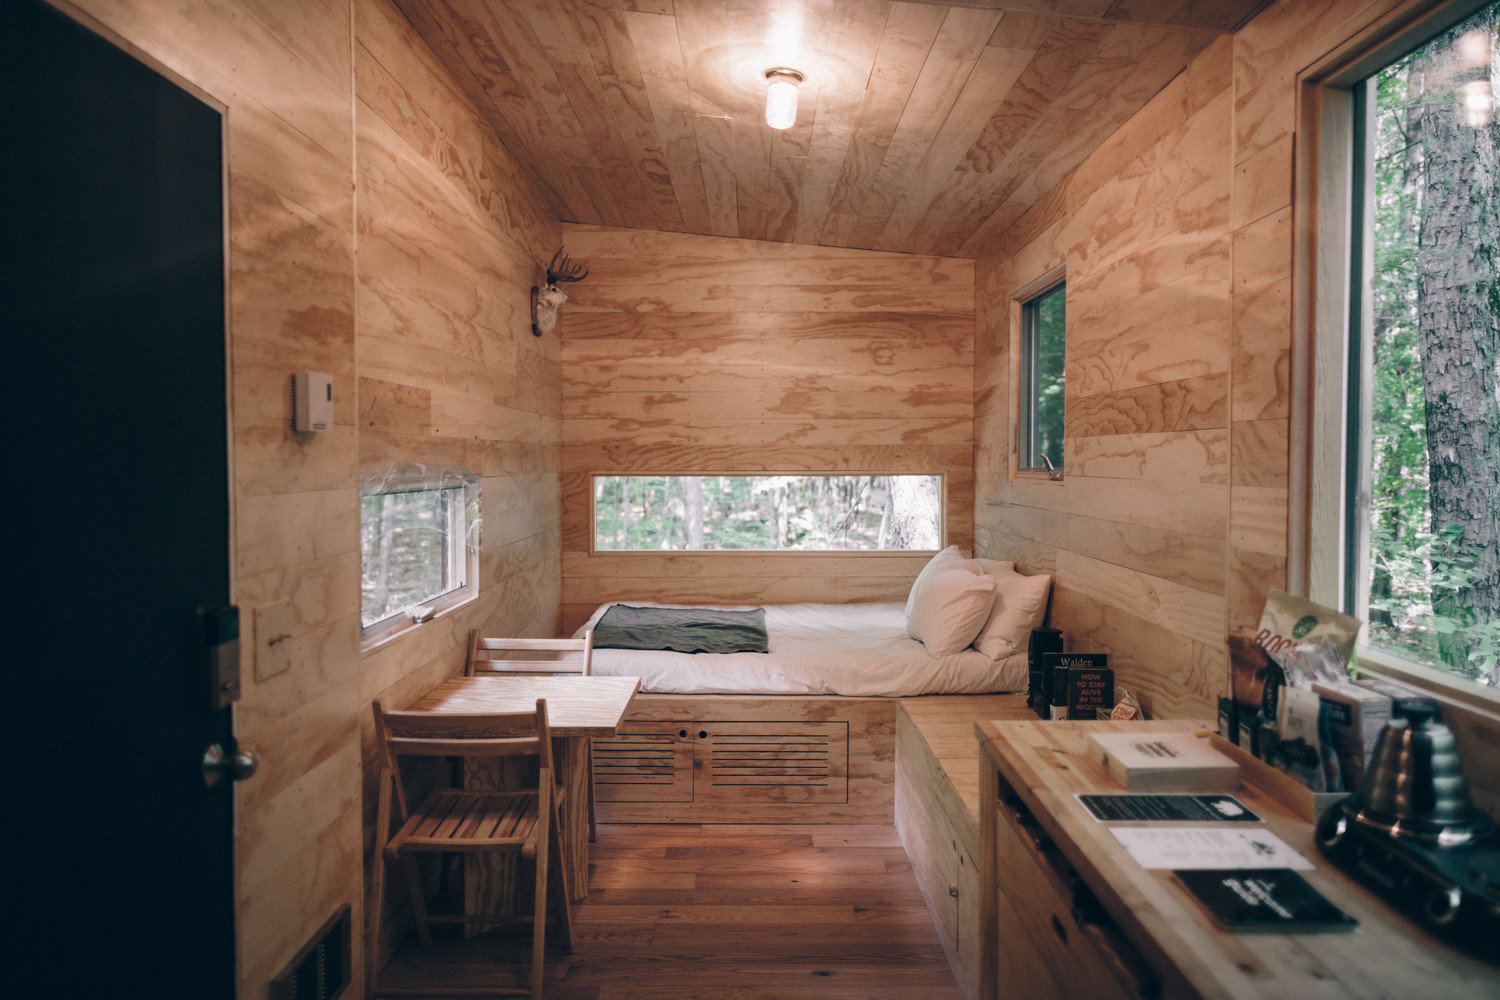 catskill getaways cabins hub pet glamping in friendly collections cabin mountains